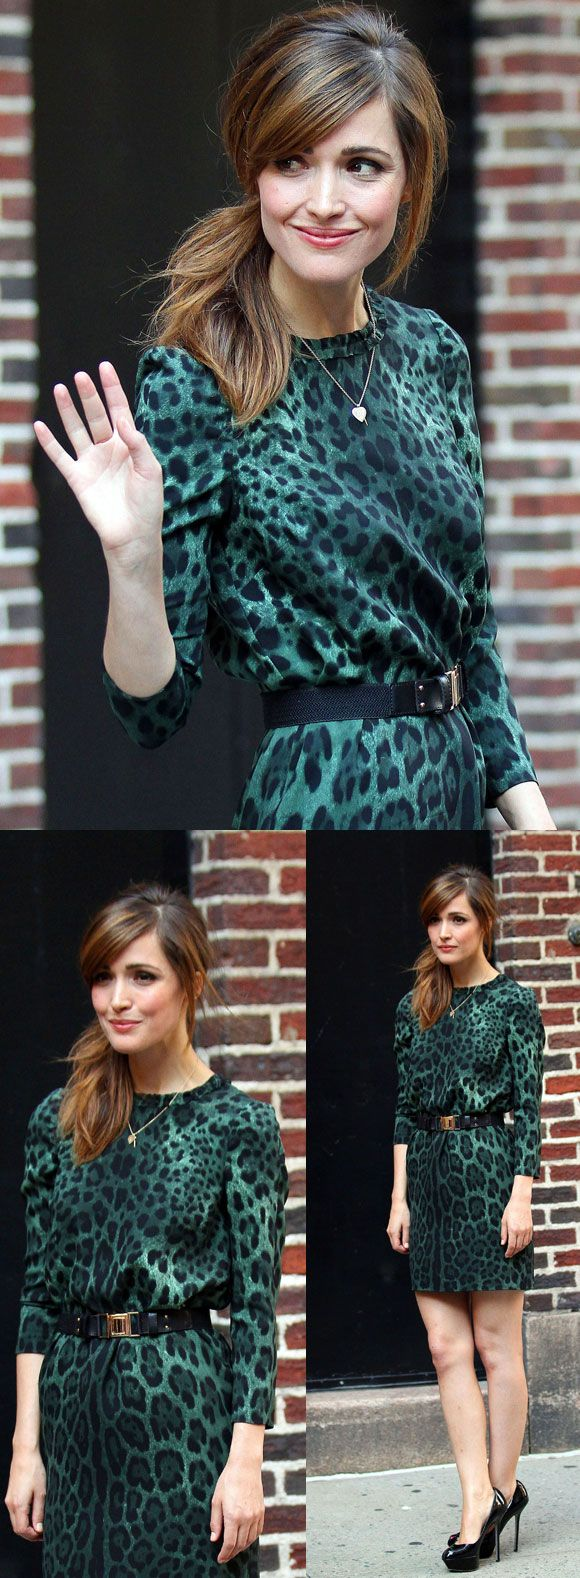 Rose Byrne  http://news.directv.com/2012/07/18/rose-byrne-talks-damages-season-5-exclusive-interview/